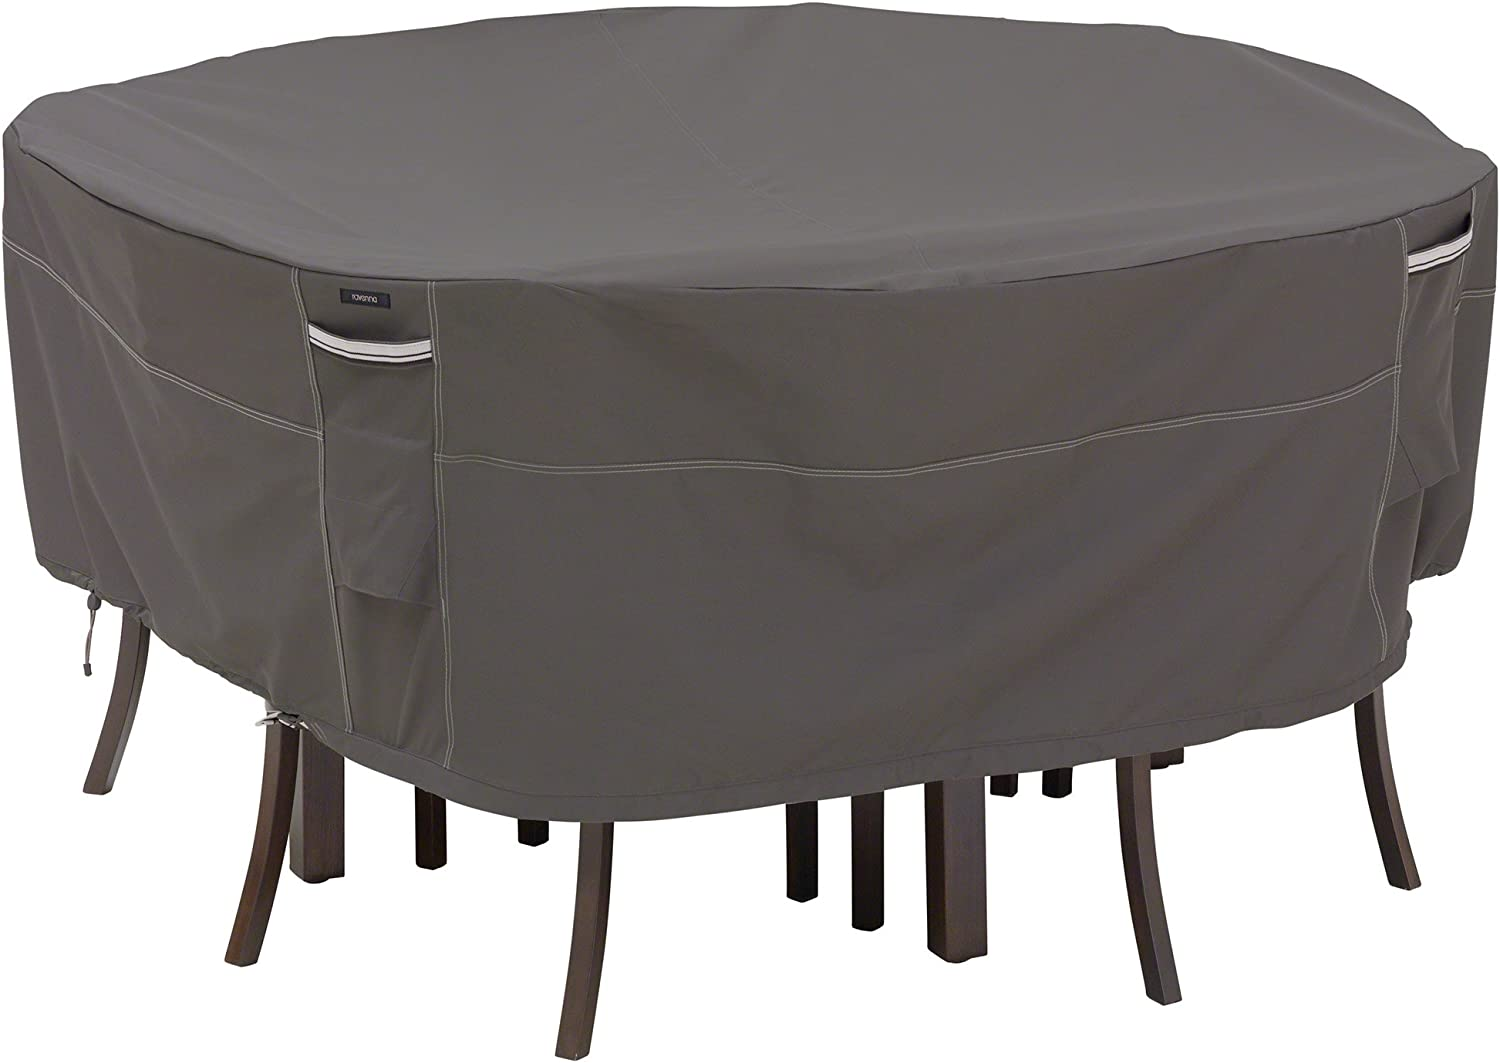 Classic Accessories Ravenna Round Patio Table Chairs Cover, Medium Large